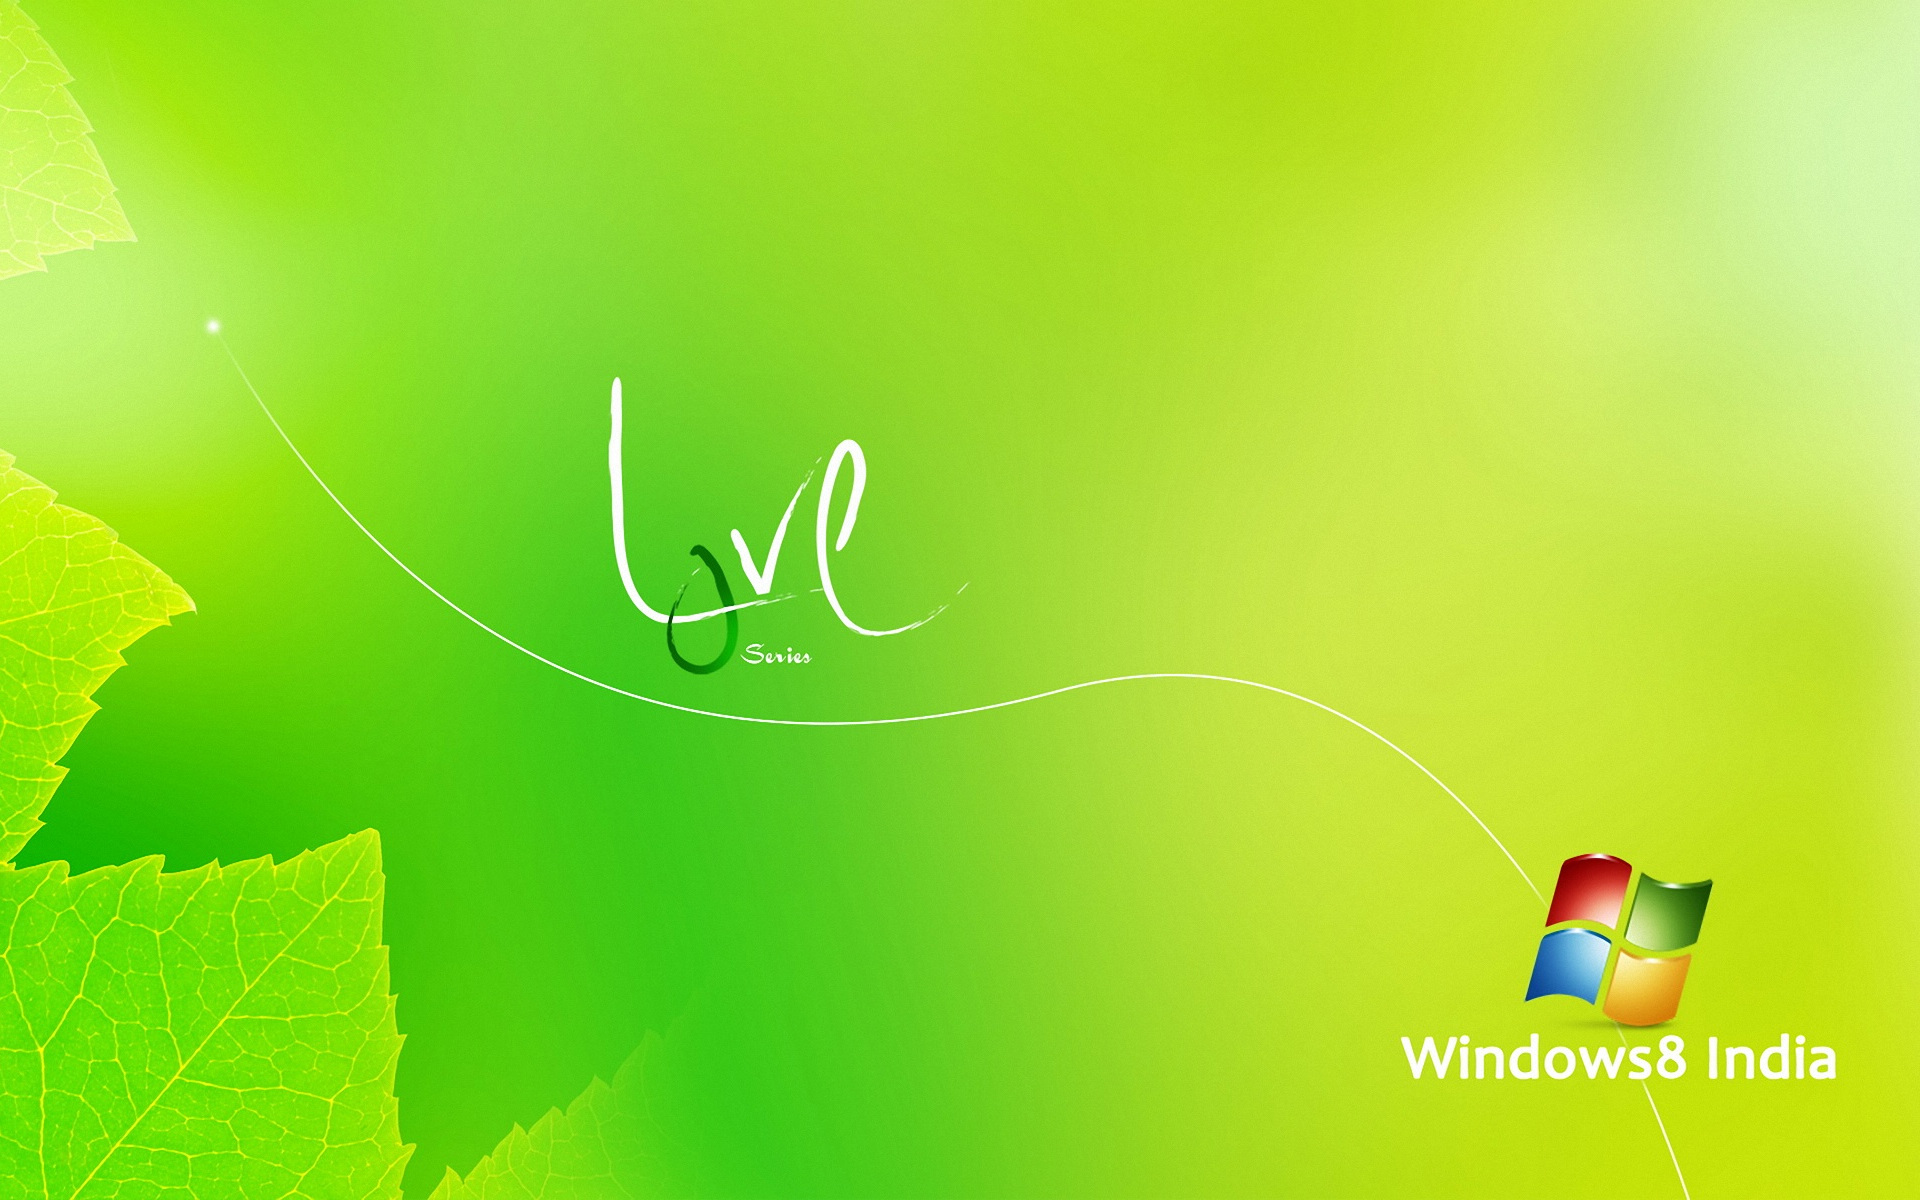 Windows-Free-Desktop-Awesome-Windows-Pictures-and-wallpaper-wpc90010686